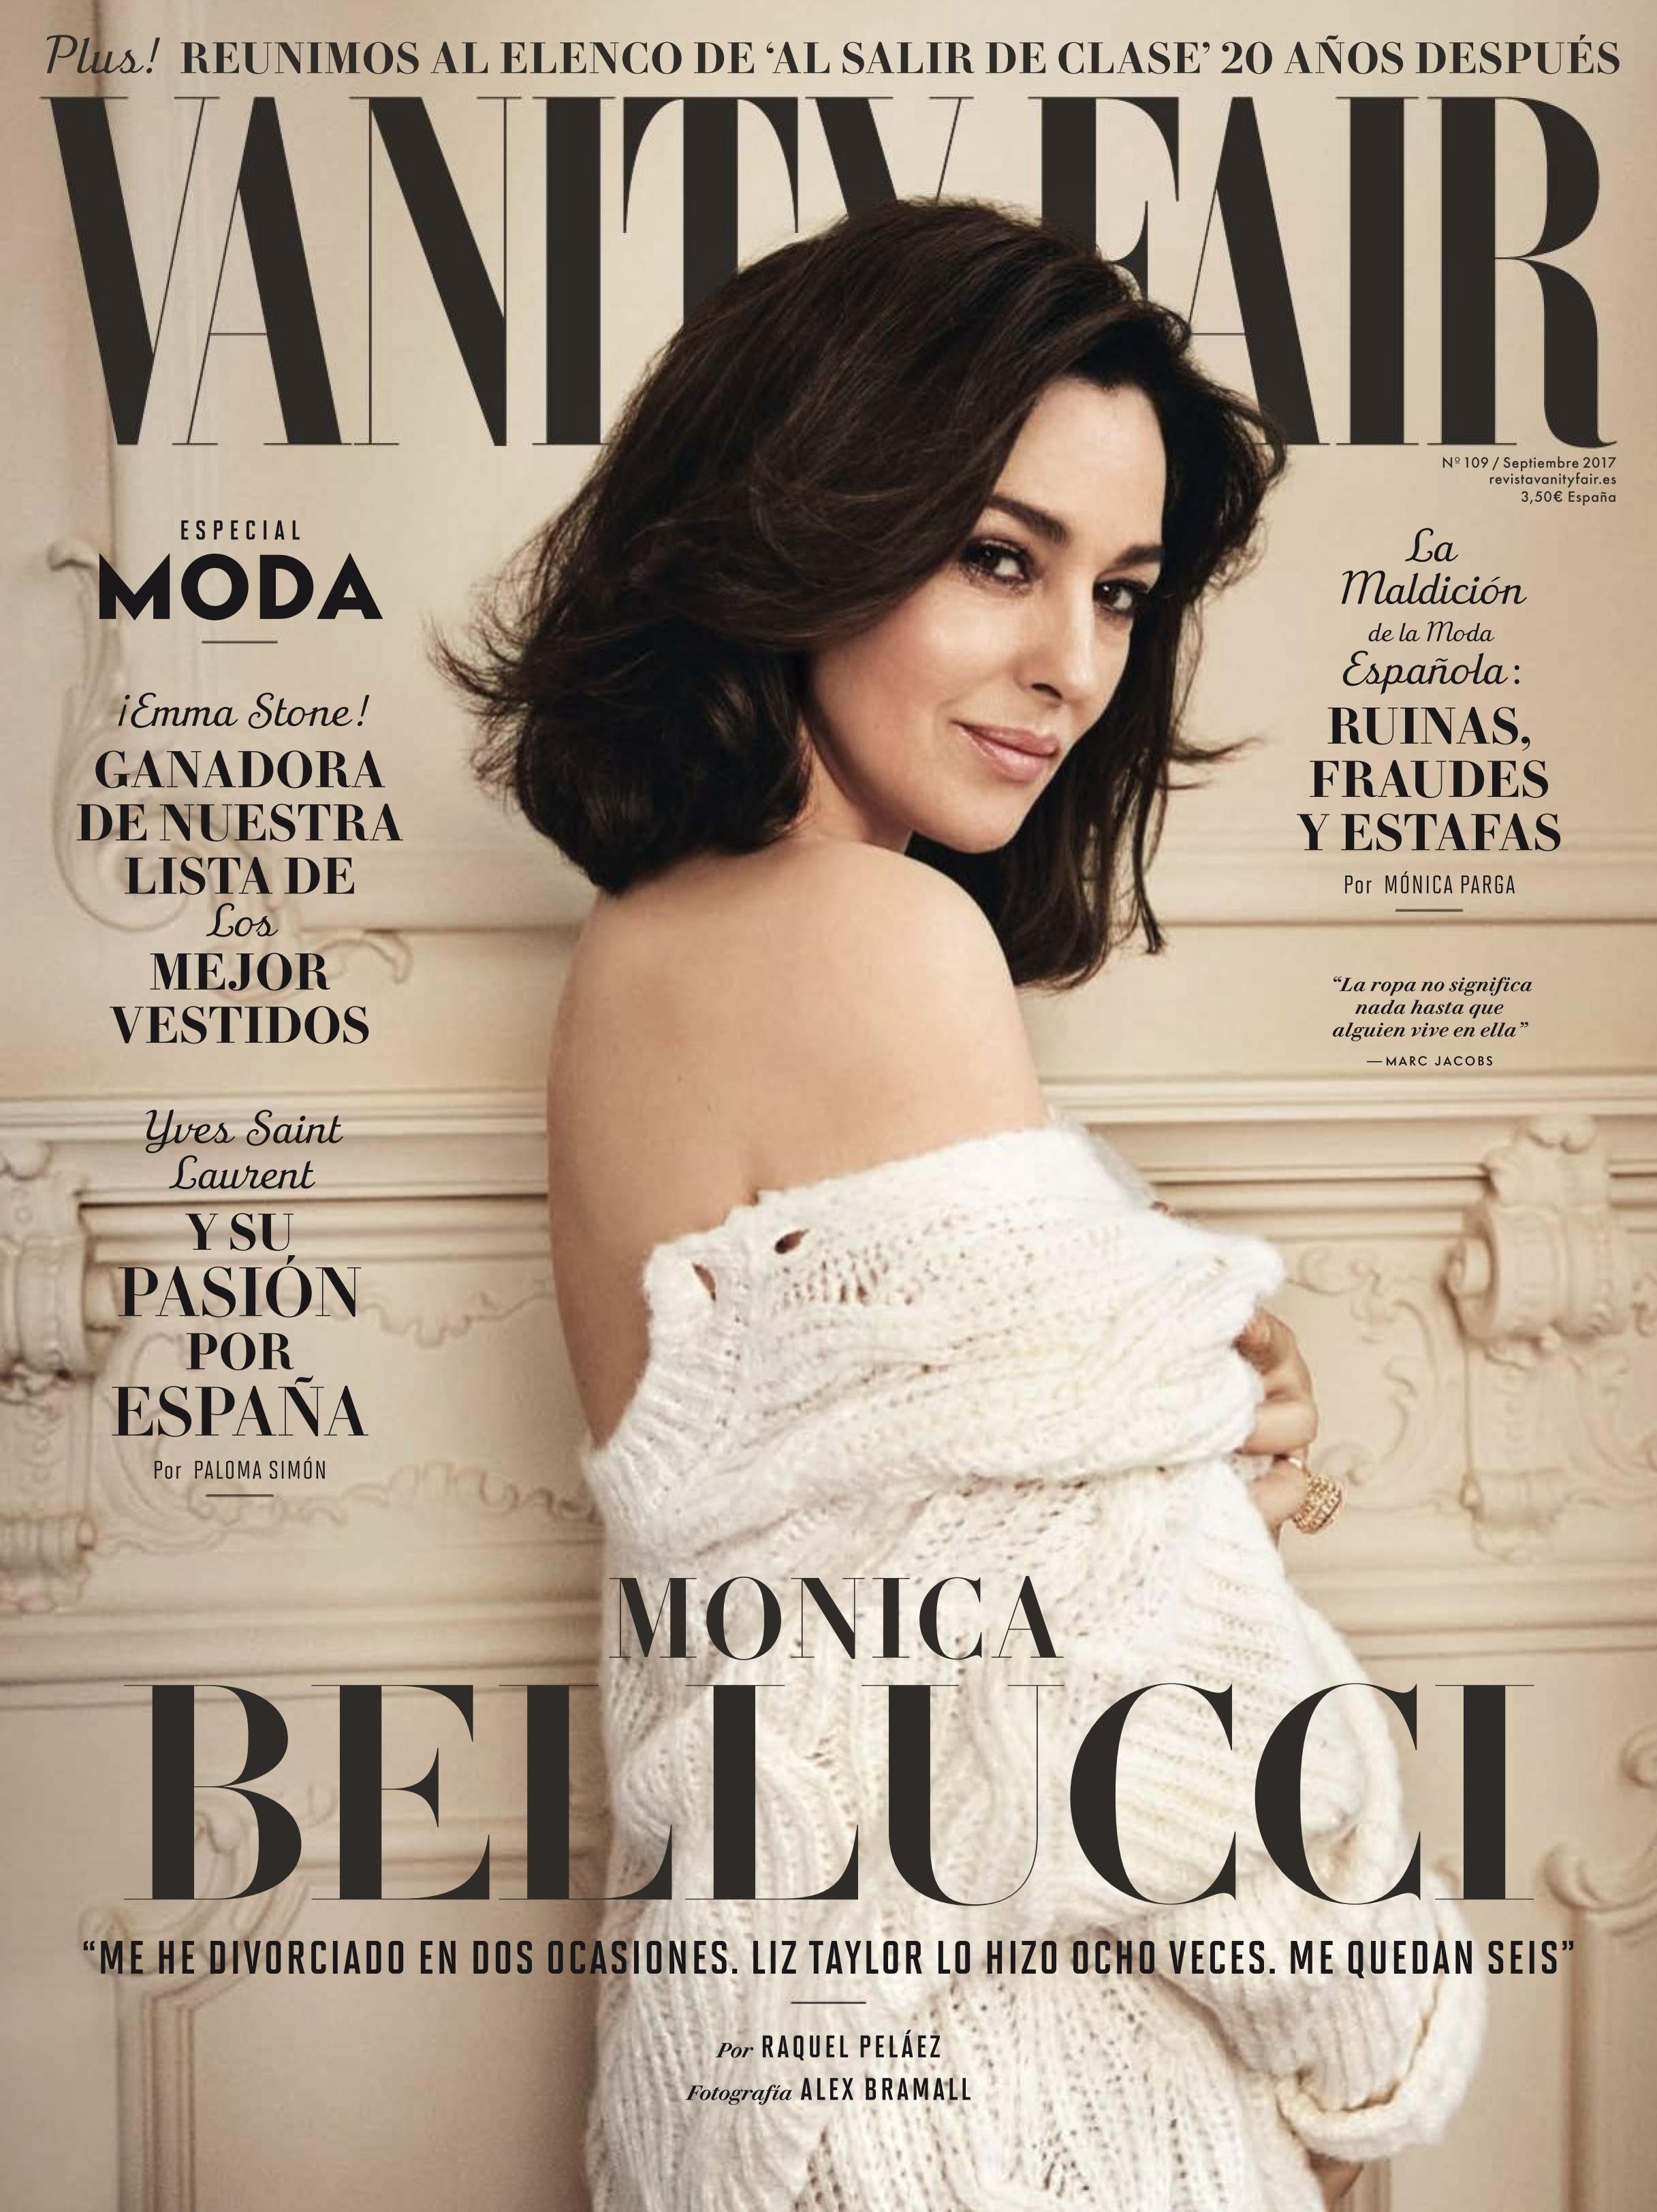 Monica Bellucci on Vanity Fair Spain: Monica Bellucci of the Spanish version Vanity Fair